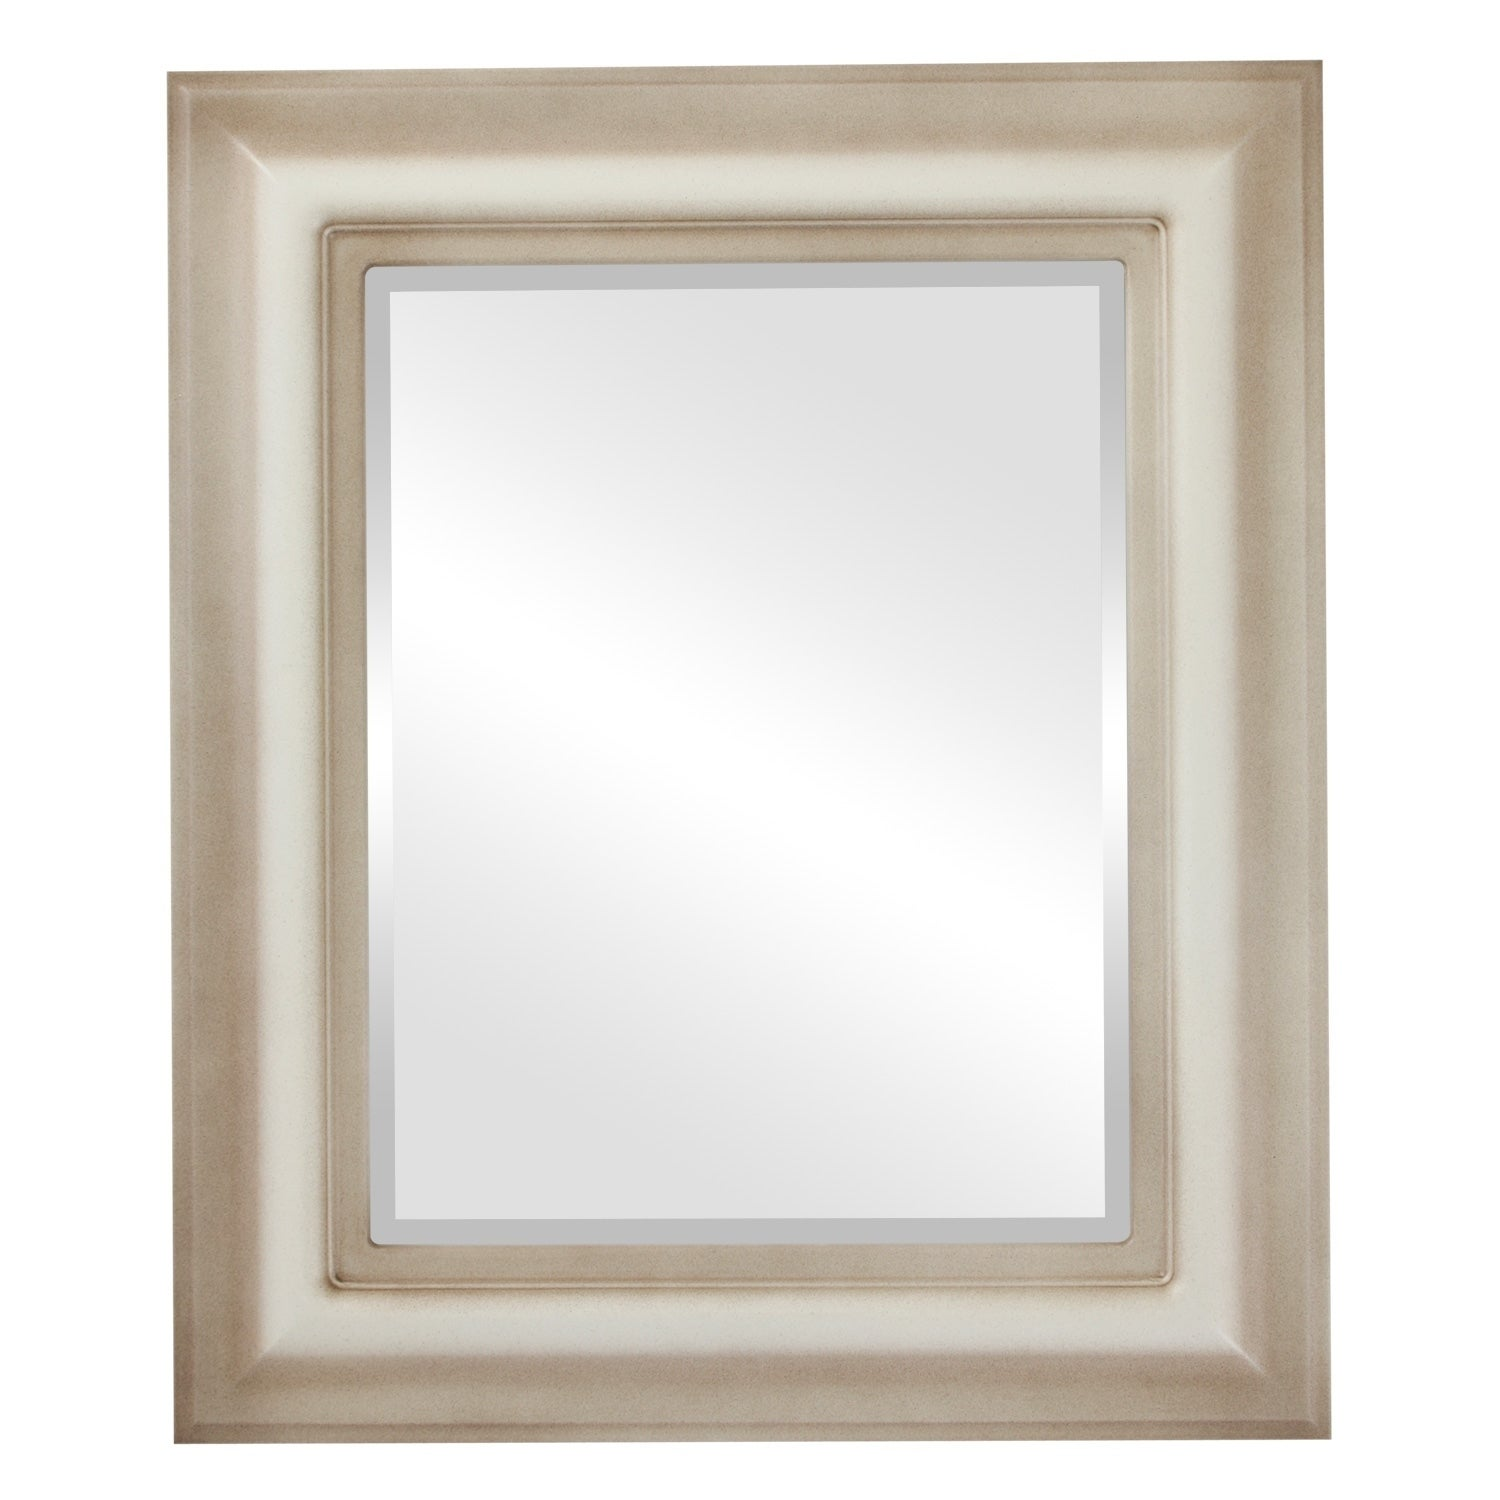 Lancaster Framed Rectangle Mirror in Taupe (17x21 - Medium (15-32 high))